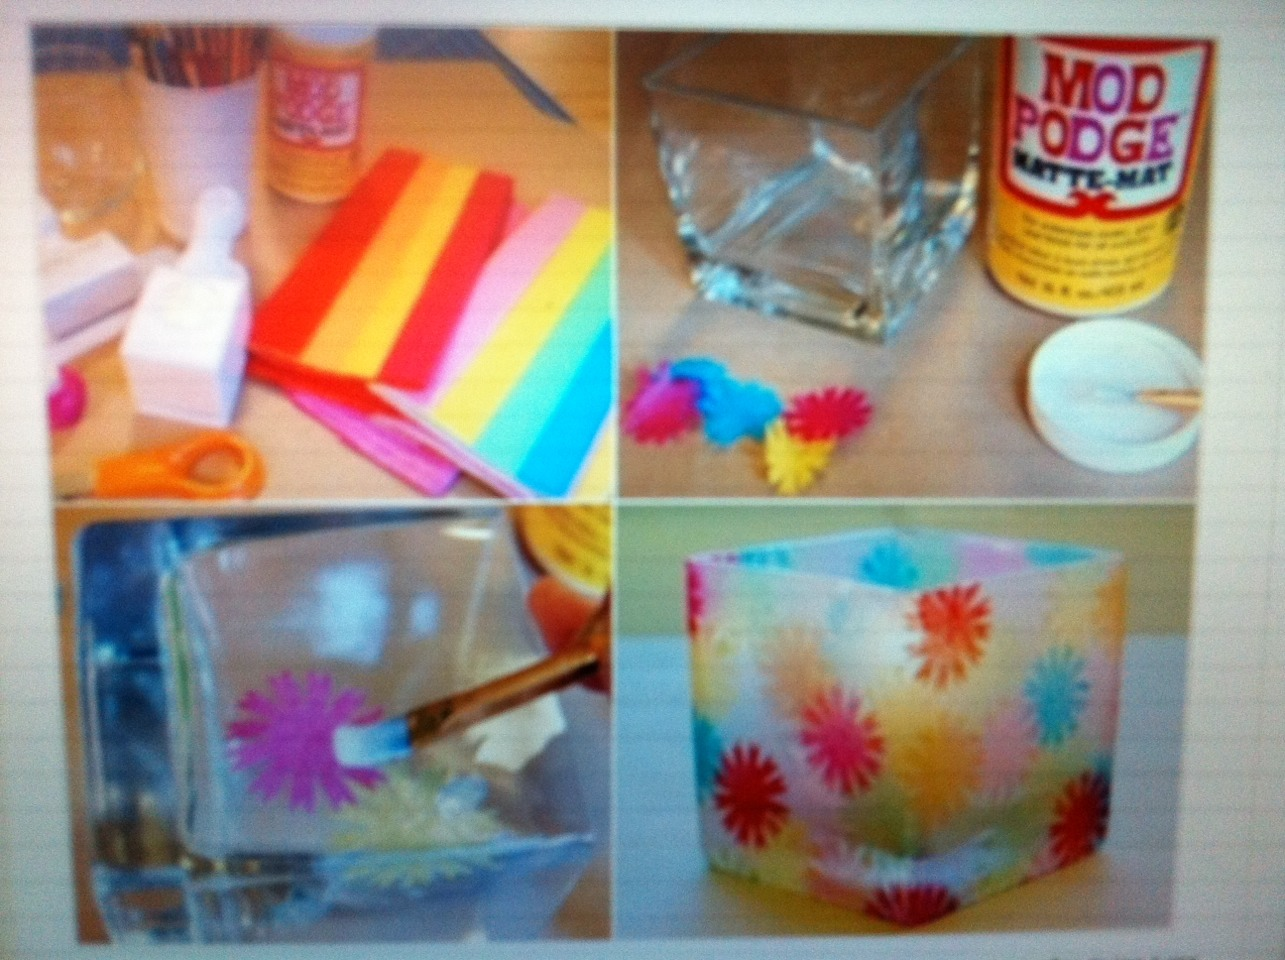 You will need : glue which after drying turns transparents, a glass, candle, tissue, scissors and a brush